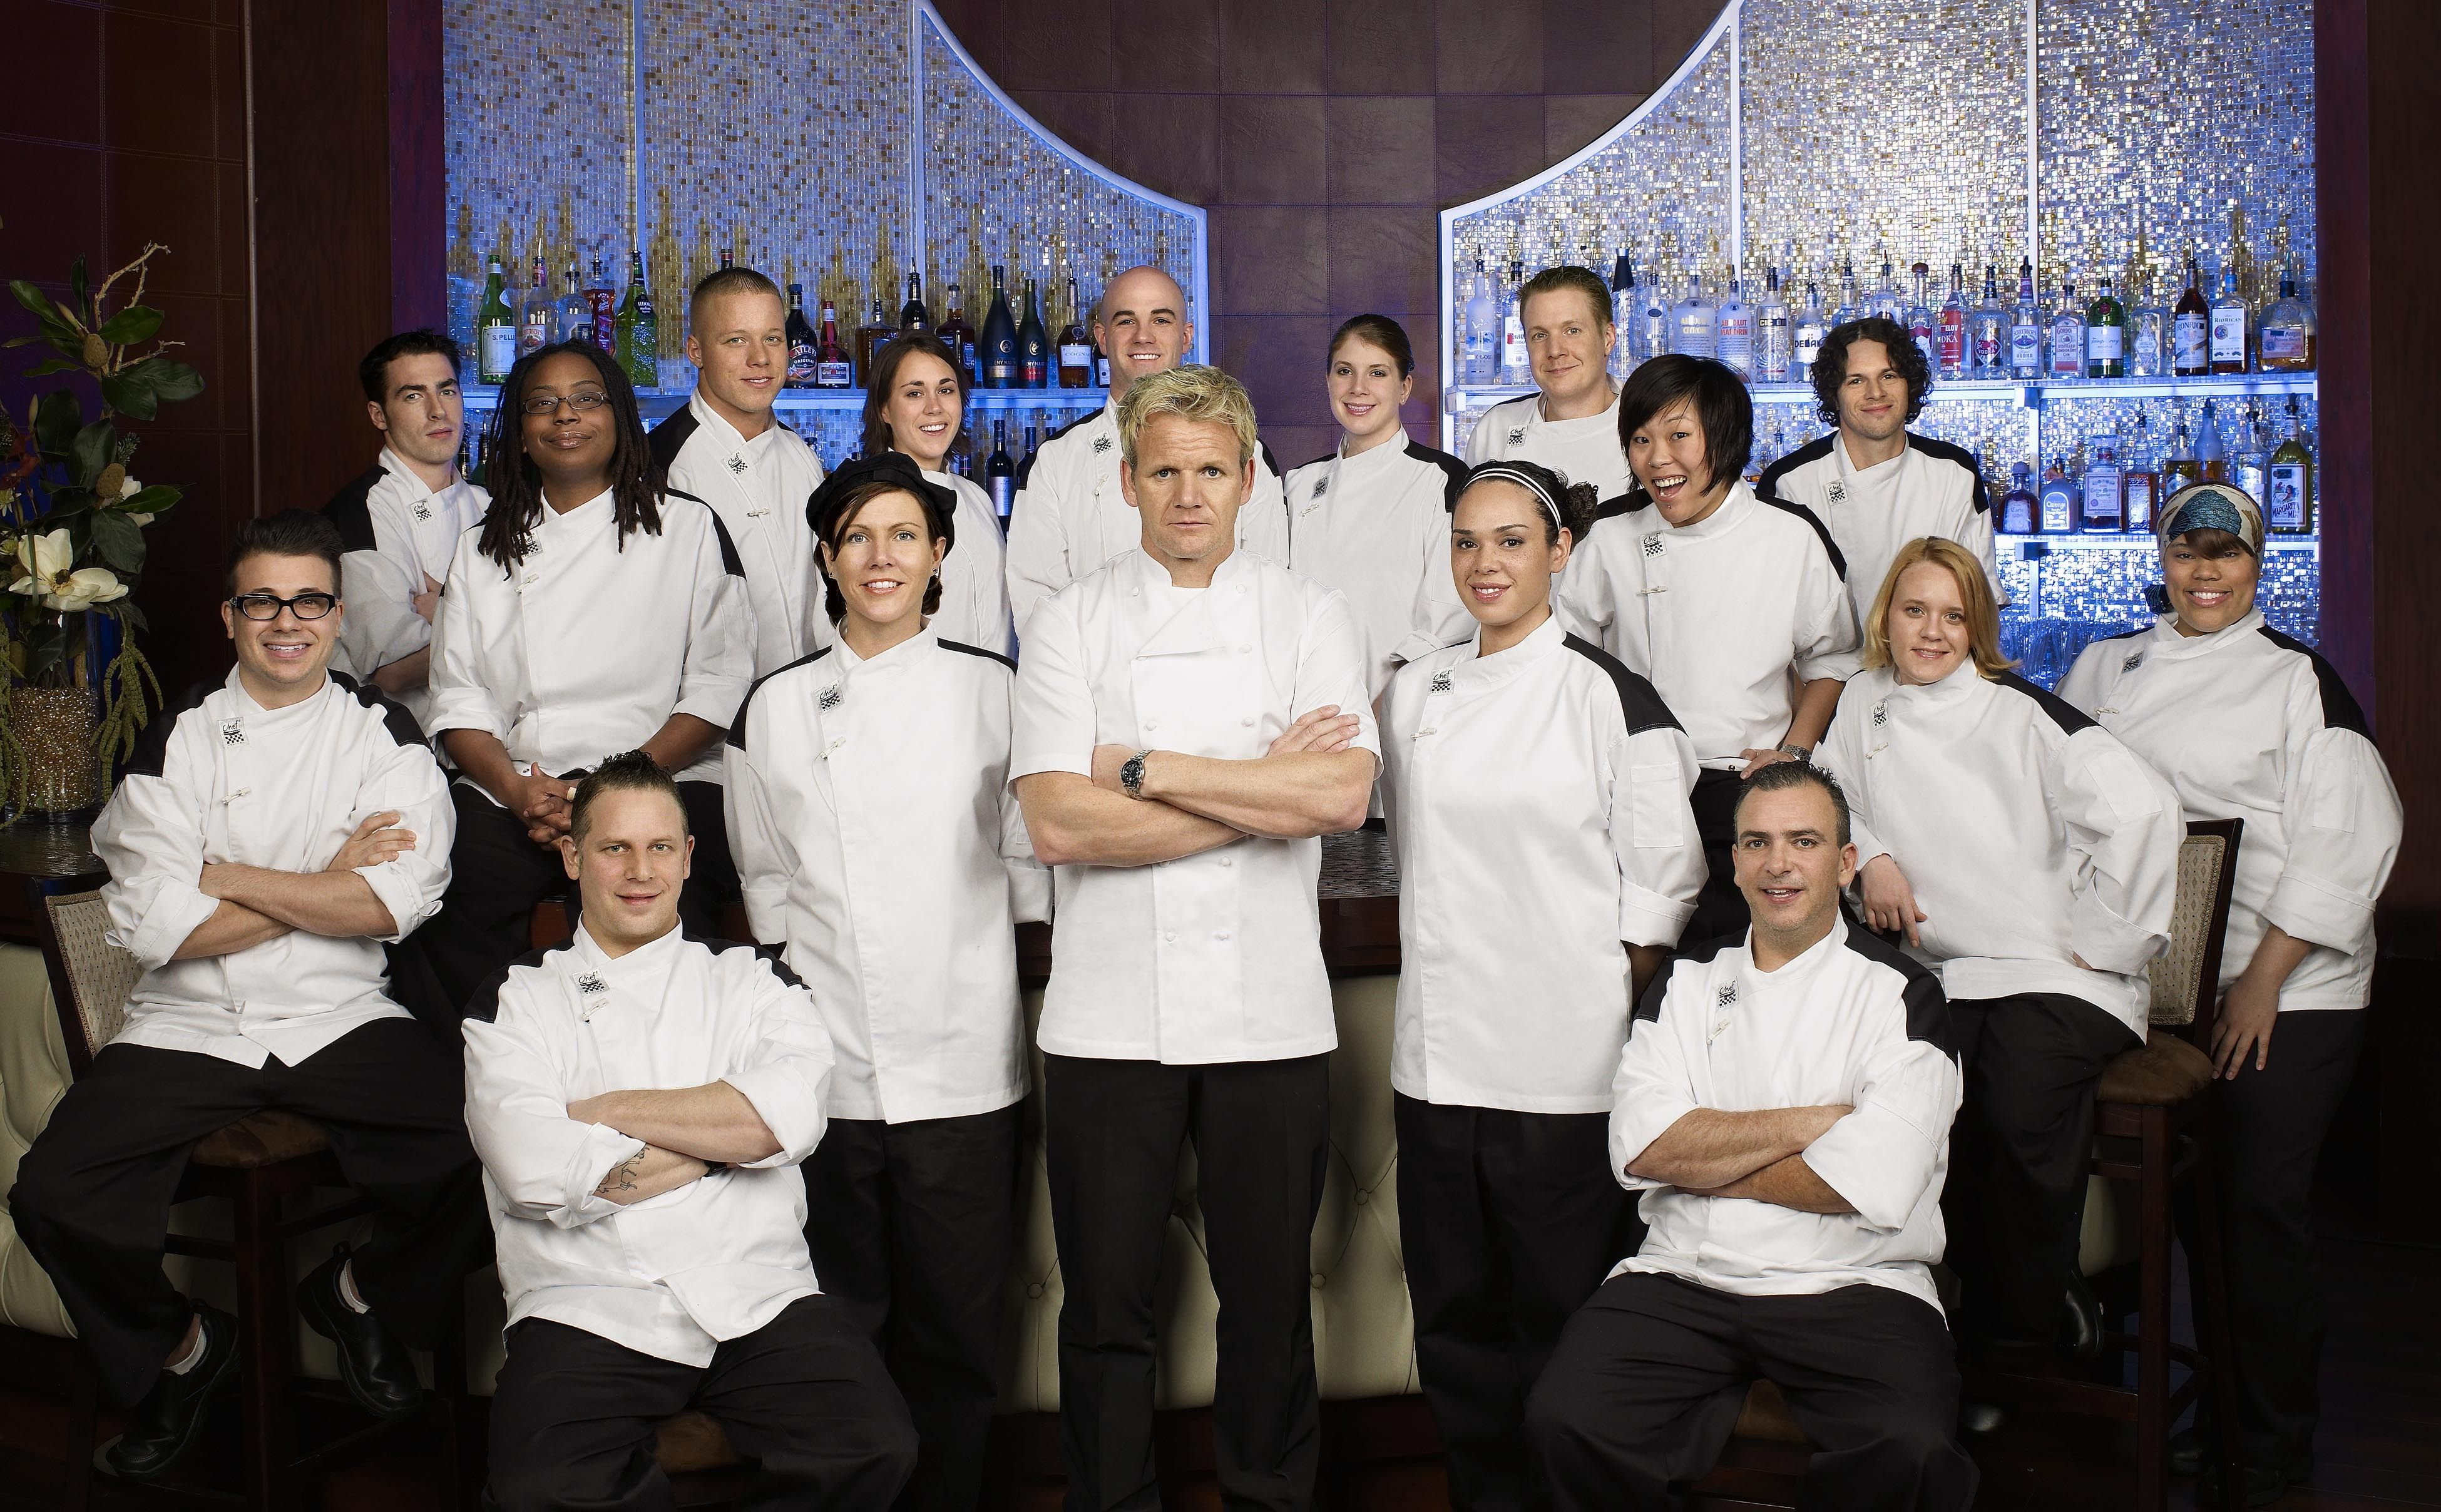 hells kitchen | gordon ramsay in hell's kitchen picture - hell's